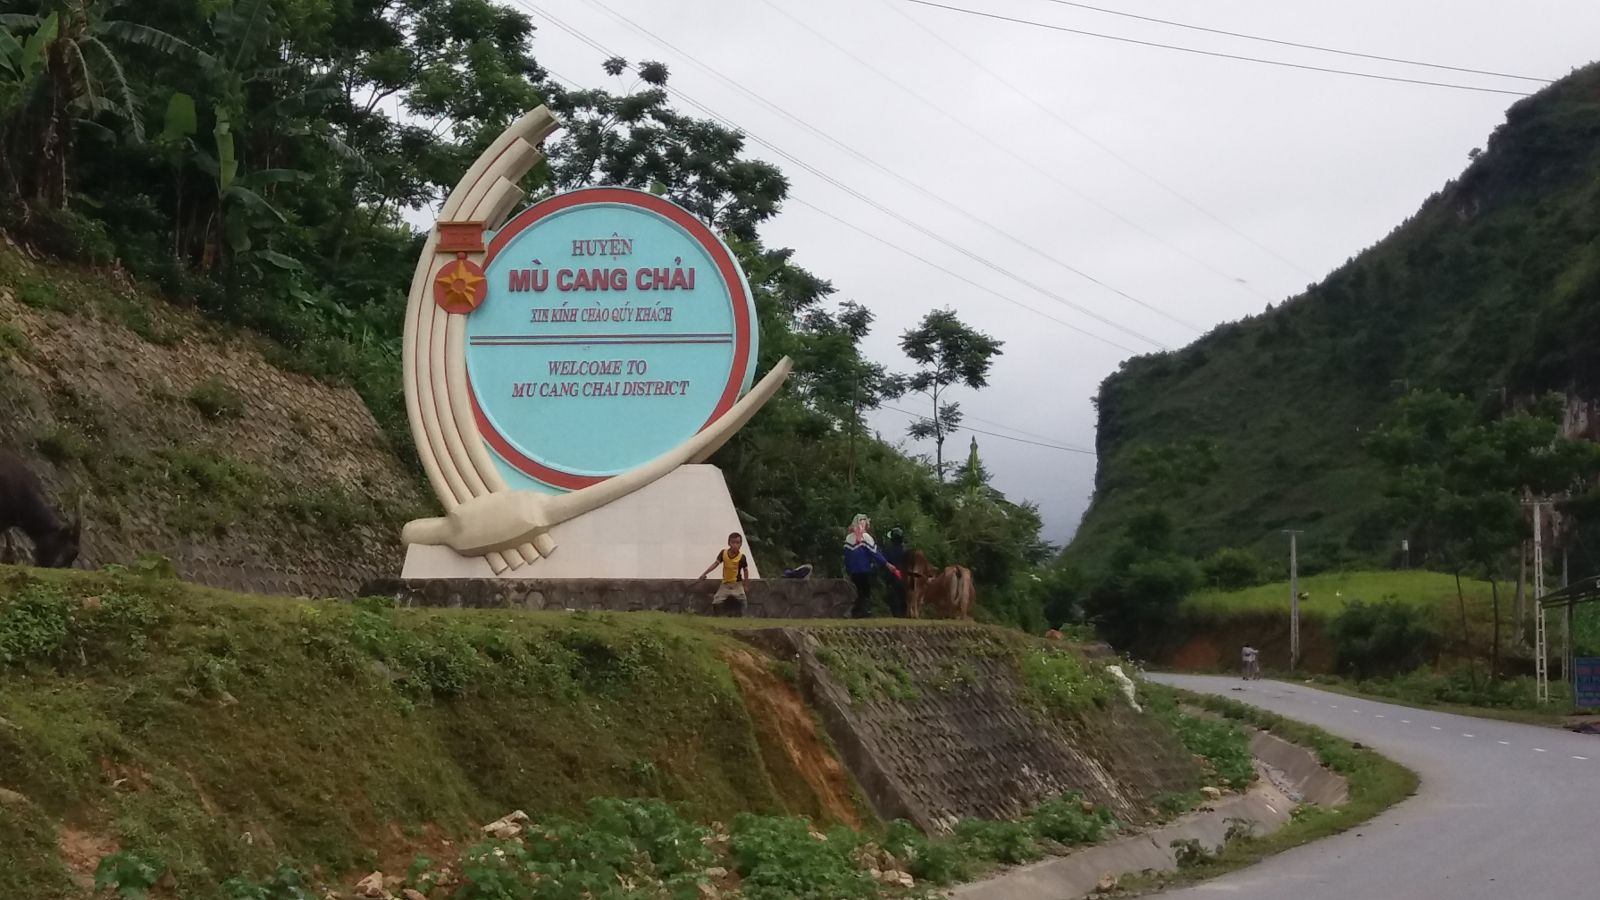 how to get to Mu Cang Chai district